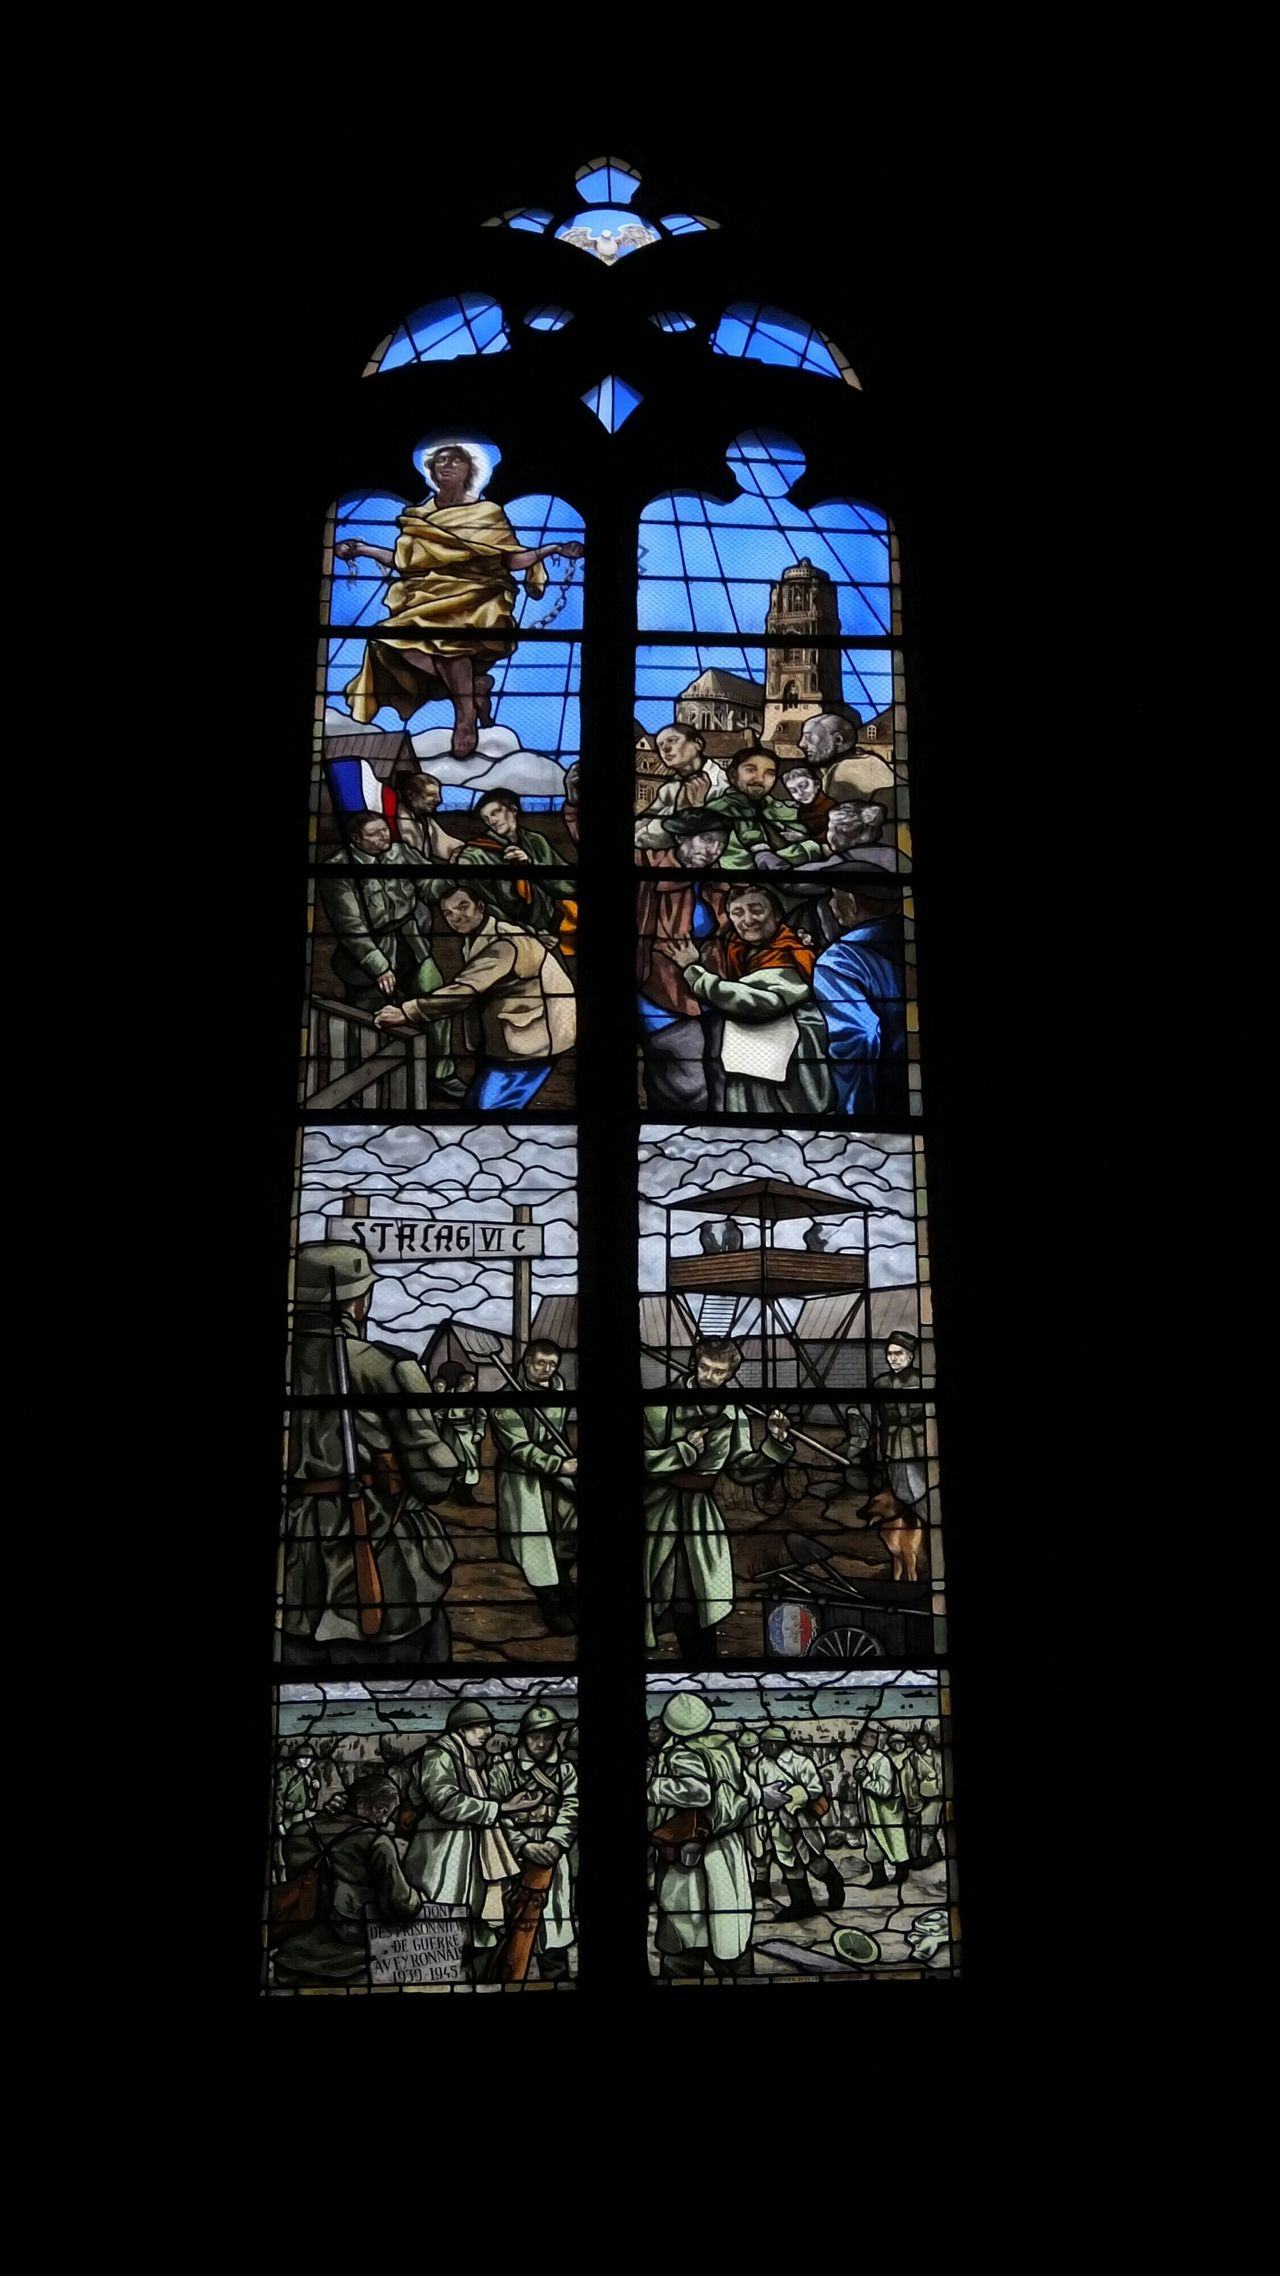 Cathédrale De Rodez Cathedral Vitrail Vitraux Stained Glass Window Rodez Aveyron Art Religious Art Religious Architecture